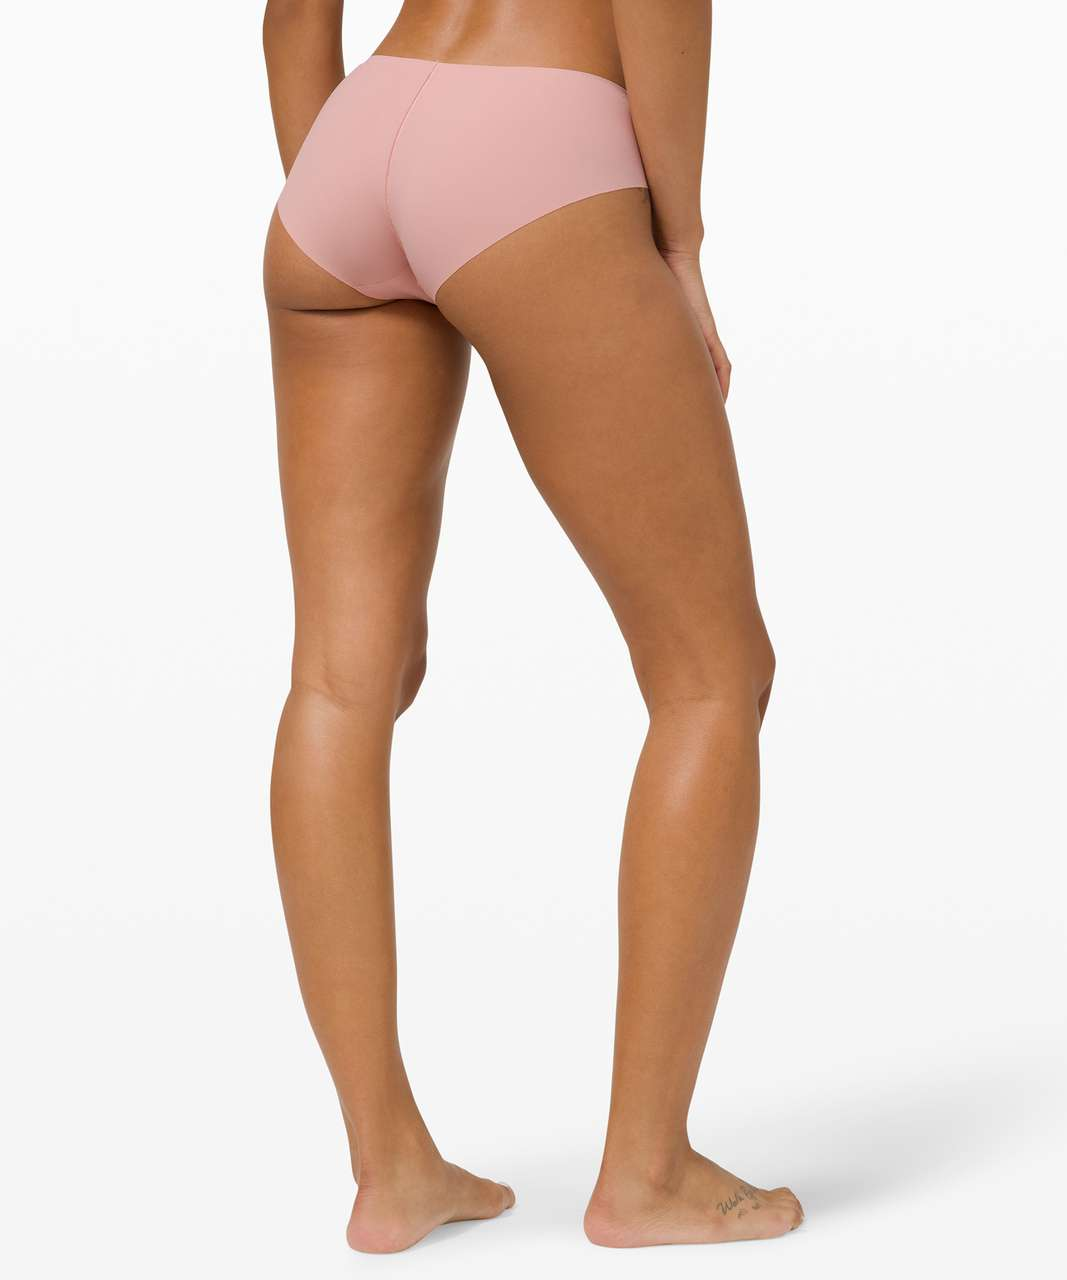 Lululemon Smooth Seamless Hipster 3 Pack - Free Spirit Alpine White Black / Pink Pastel / Chrome